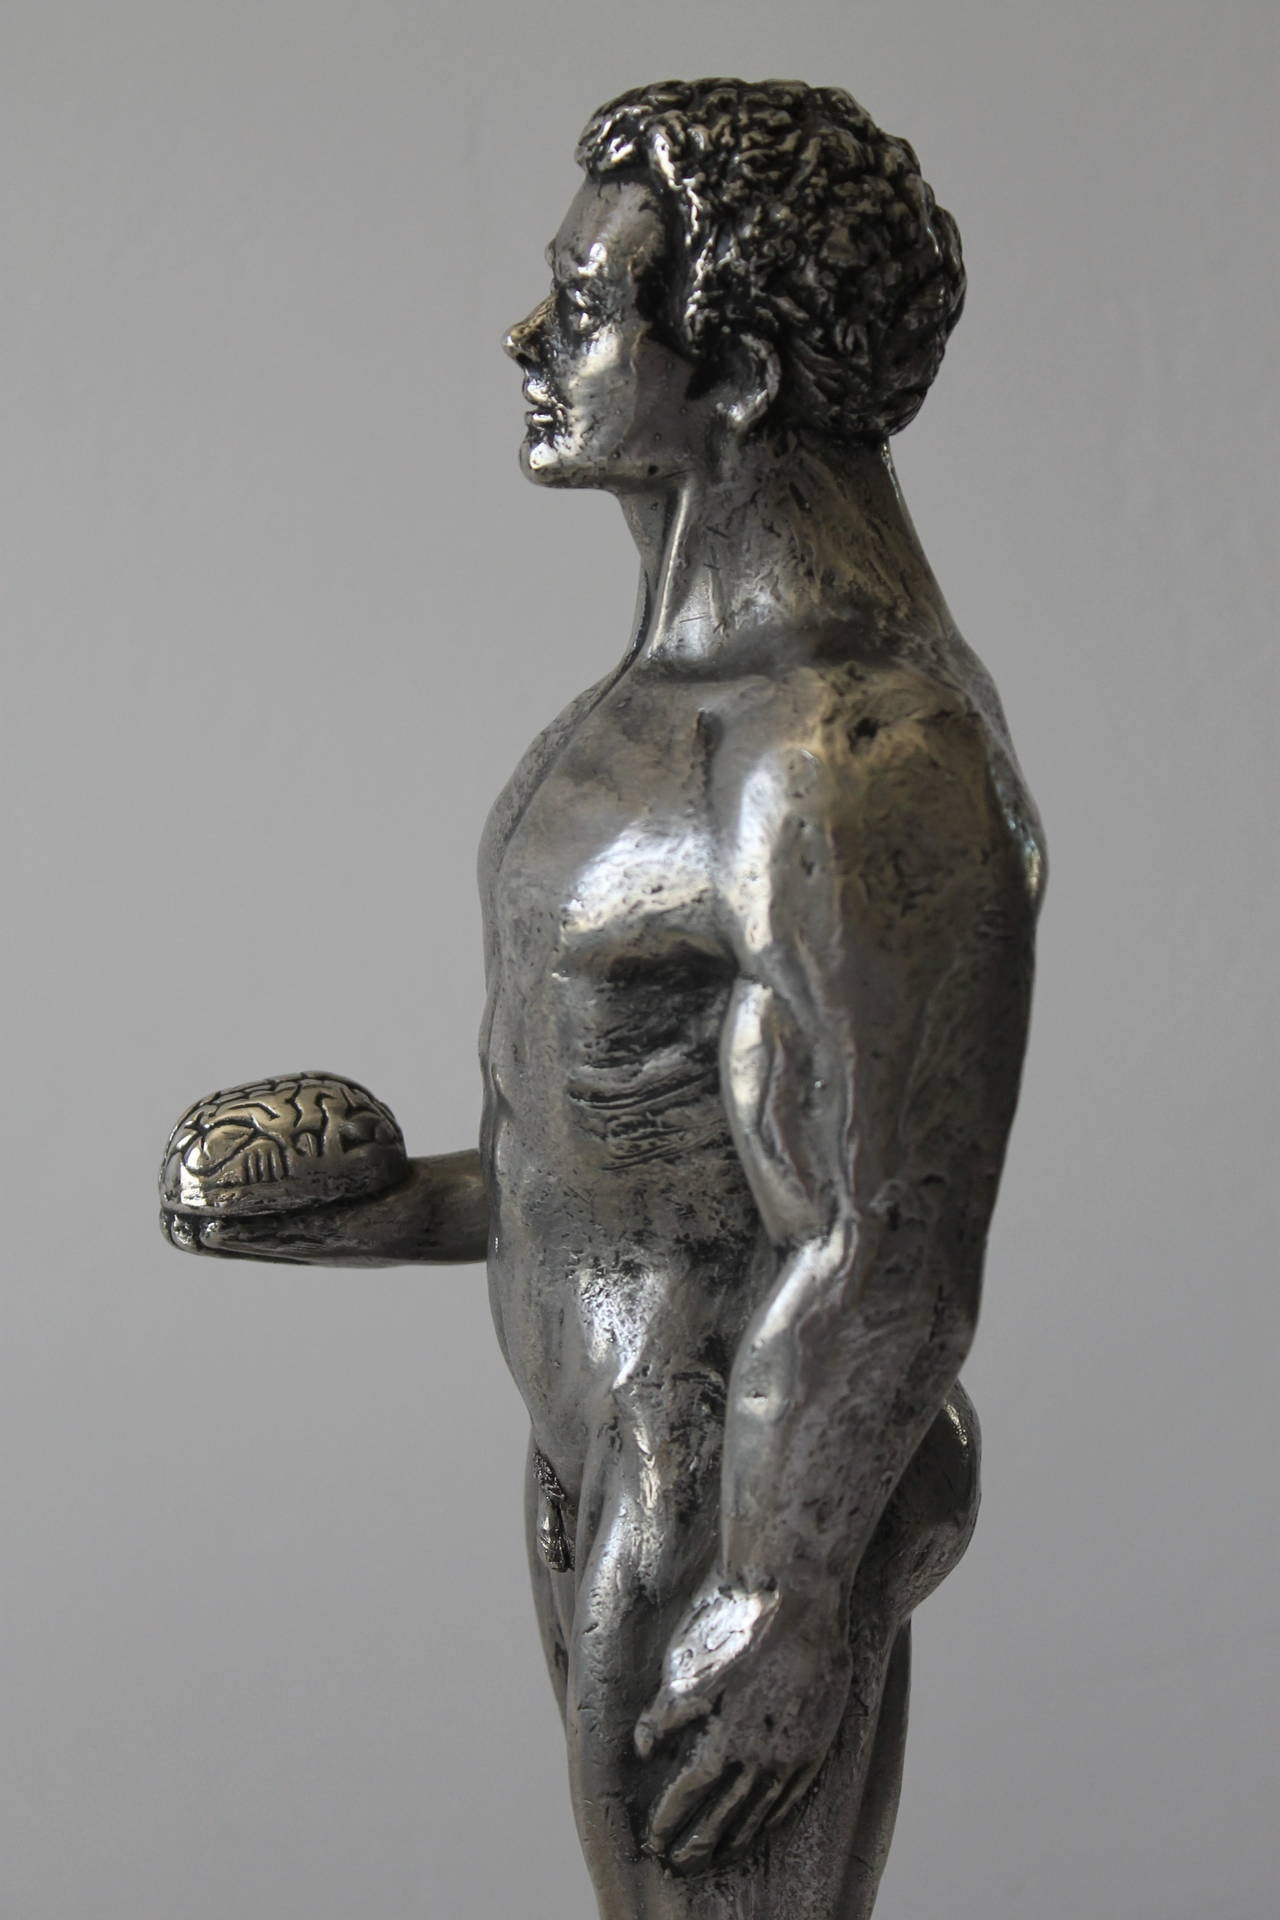 Figure of man holding brain. Called technology man on bottom of stand. This piece is more impressive in person. It weighs about 20 pounds and it's probably nickel over bronze. Figure is 4.5